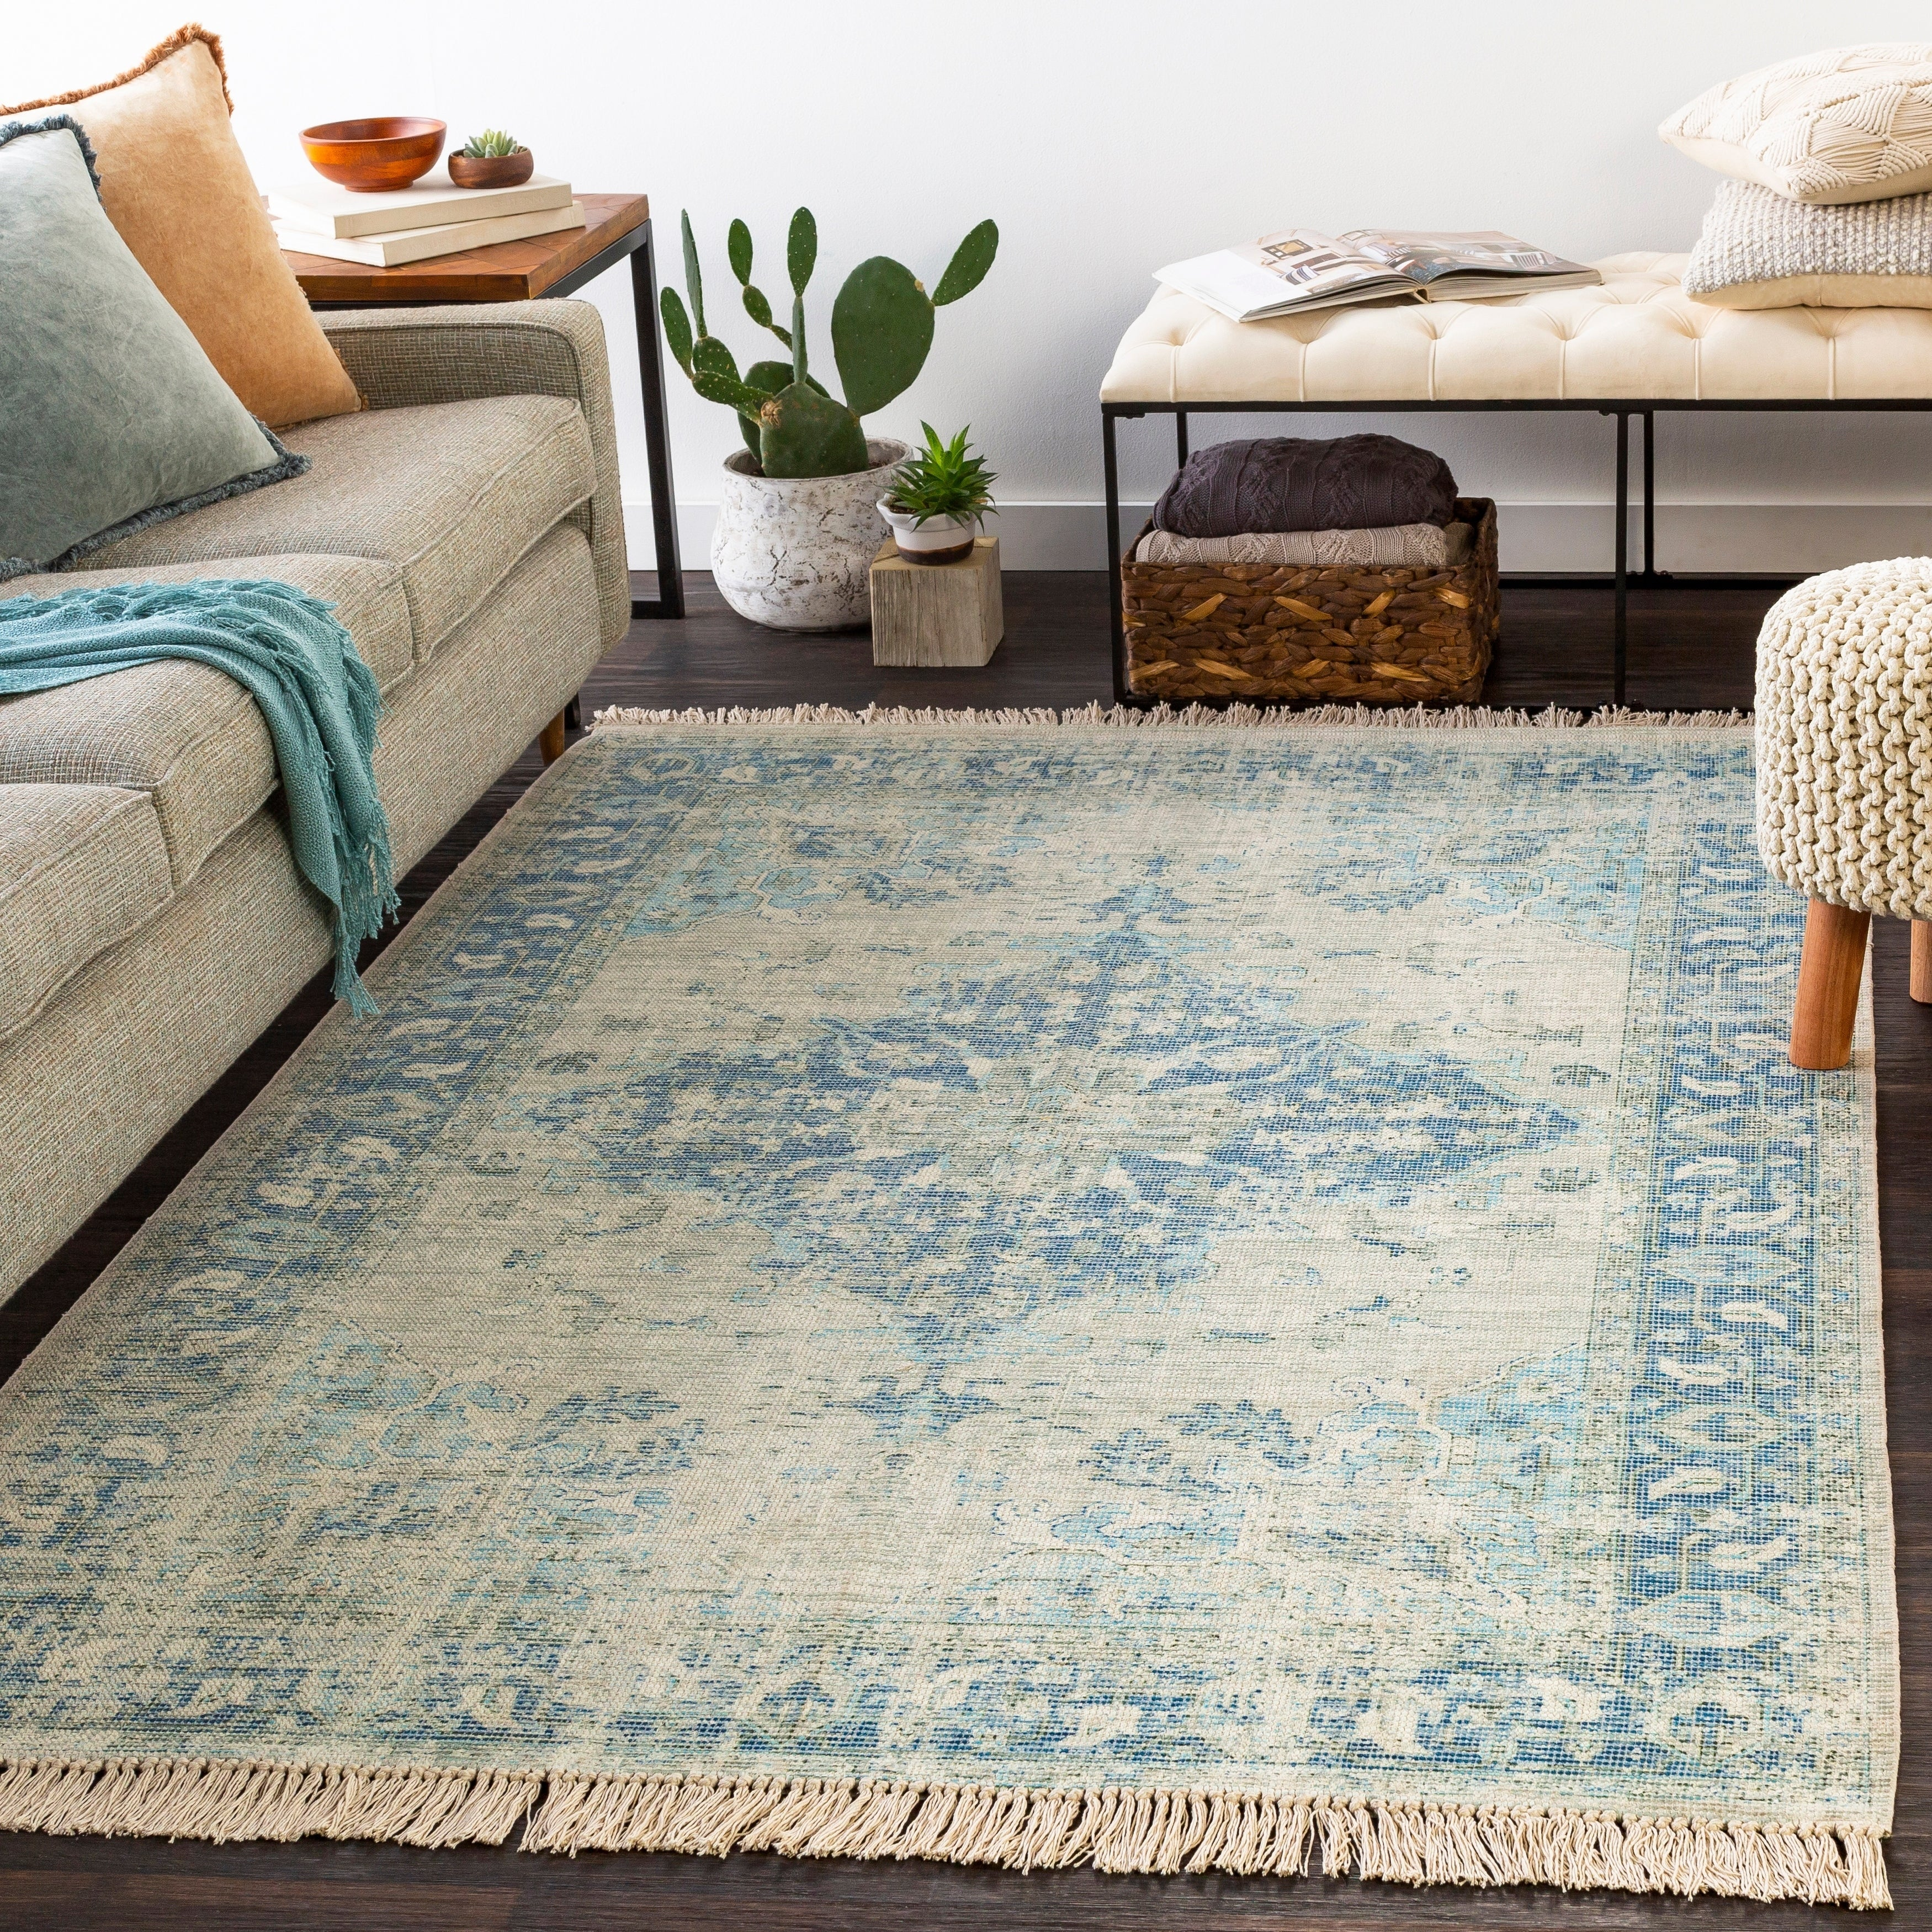 Shop For Shepard Handmade Boho Medallion Cotton Blend Area Rug Get Free Delivery On Everything At Overstock Your Online Home Decor Store Get 5 In Rewards With Club O 30539007